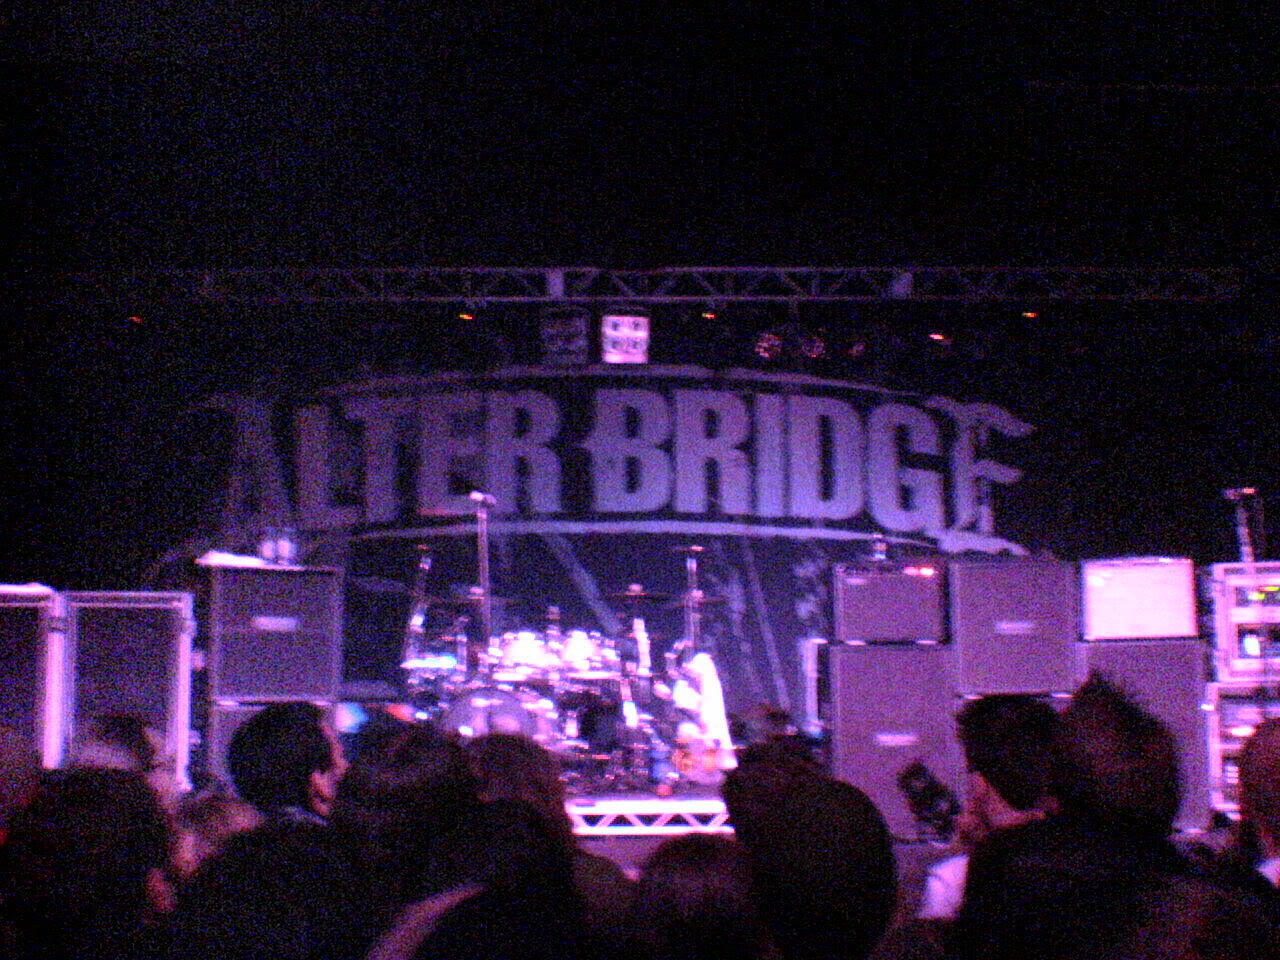 Alter Bridge Wallpaper Wallpapersafari